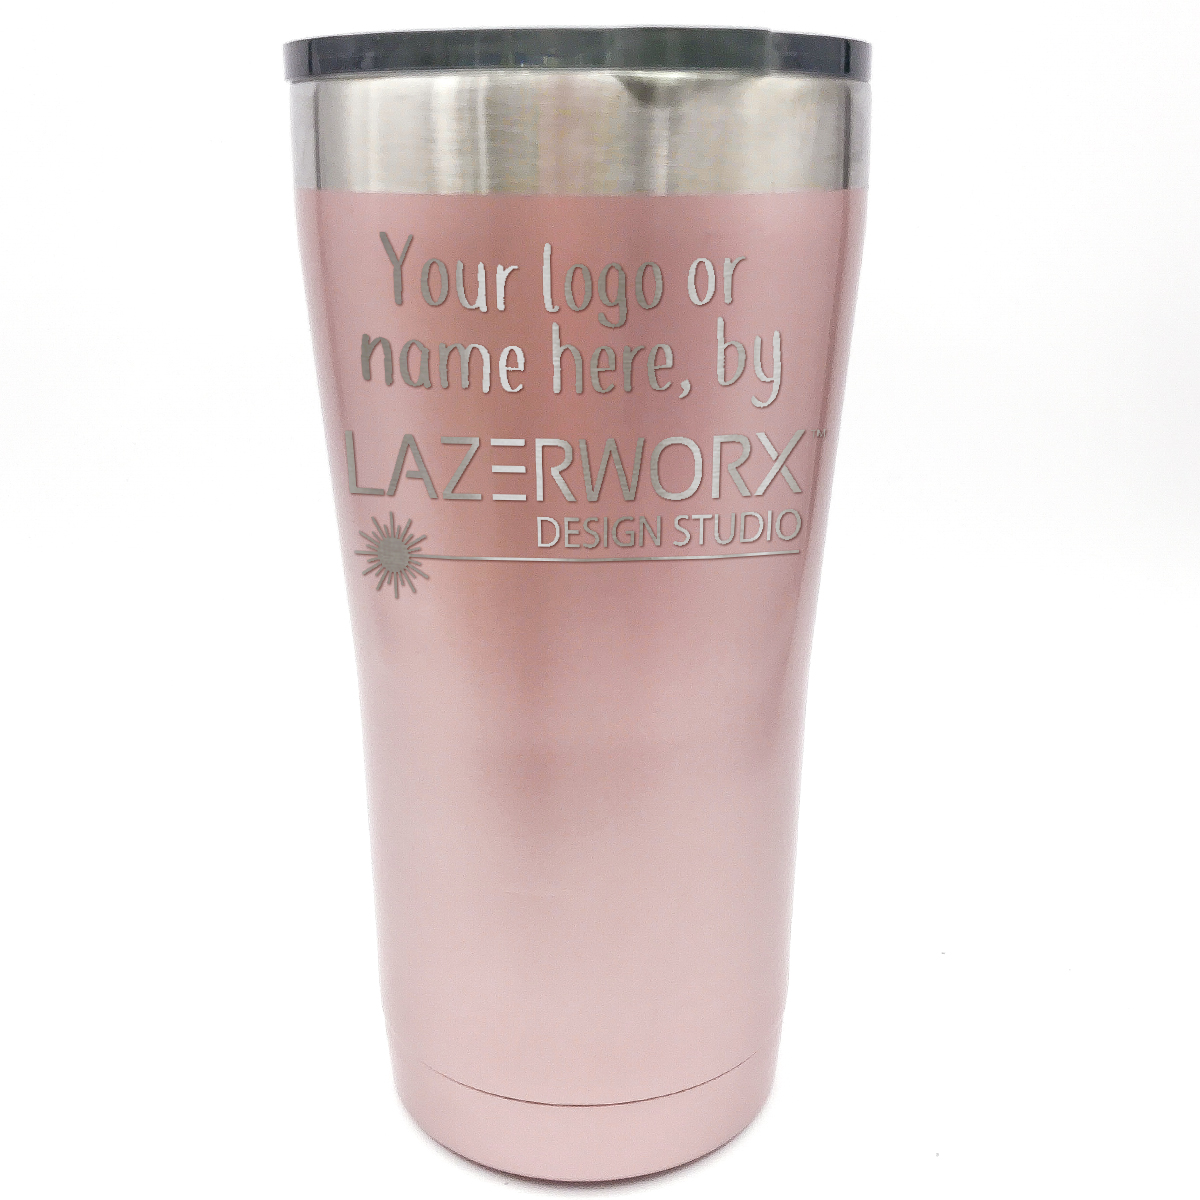 ozark-trail-20-oz-rose-gold-stainless-steel-tumbler-laser-engraved-personalized-logo